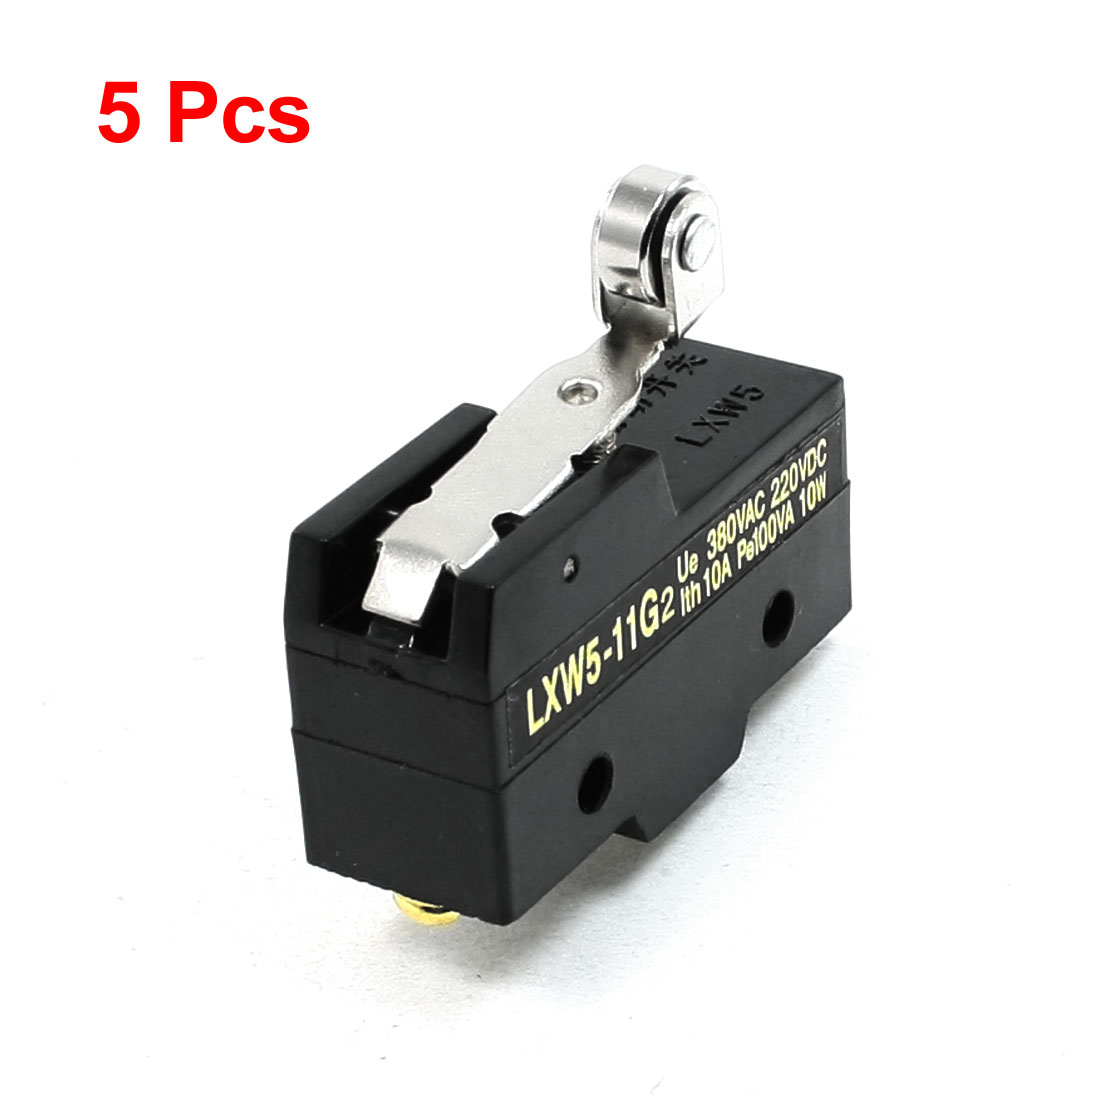 5 Pcs Short Hinge Roller Lever Momentary Micro Limit Switch LXW5-11G2